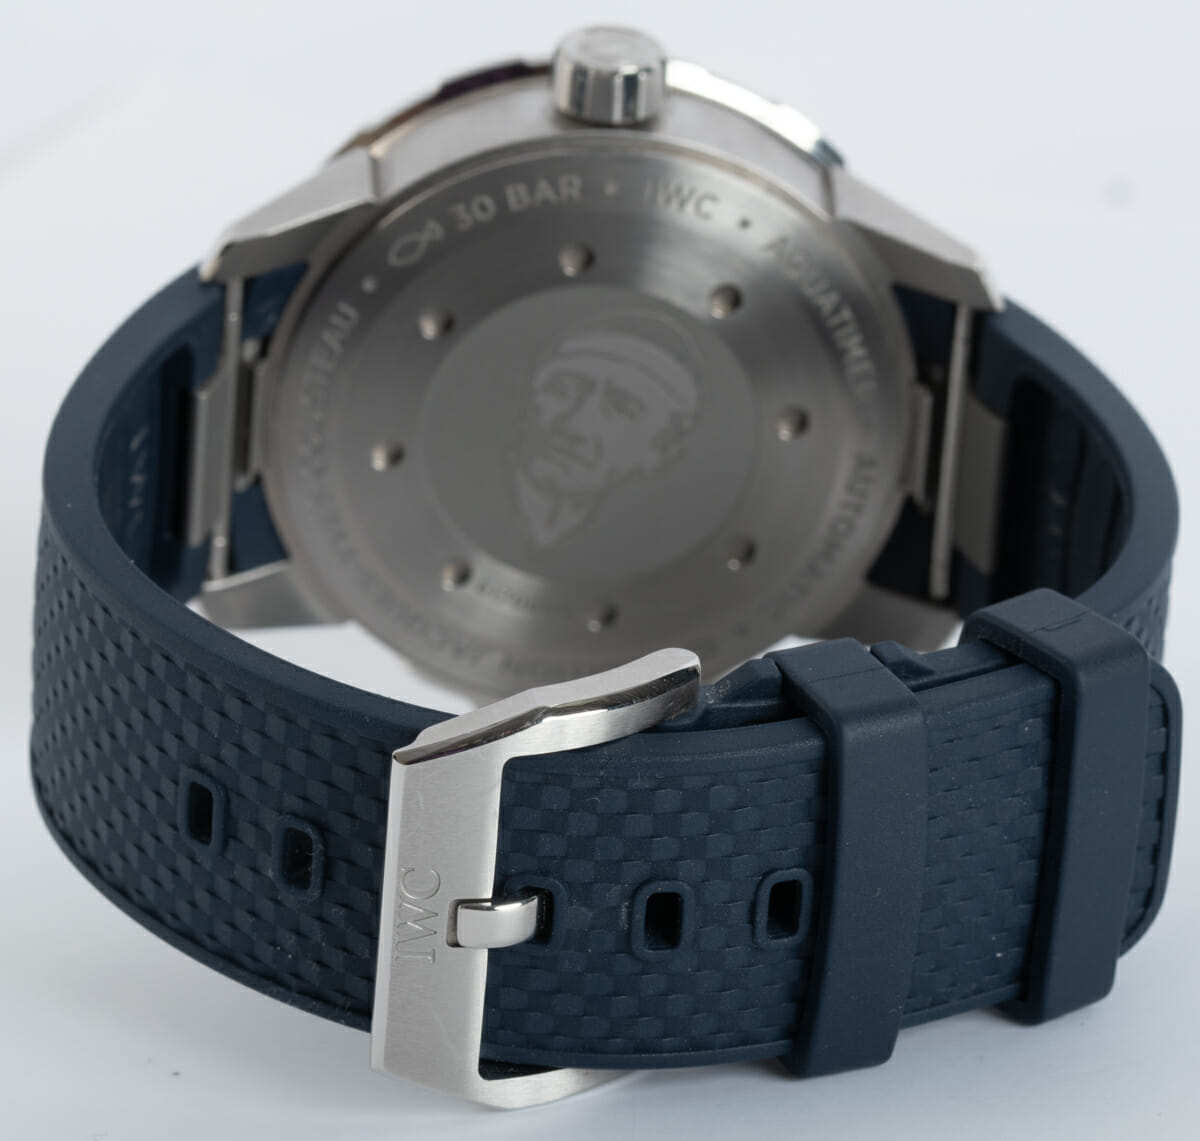 Rear / Band View of Aquatimer 'Expedition Jacques-Yves Cousteau'